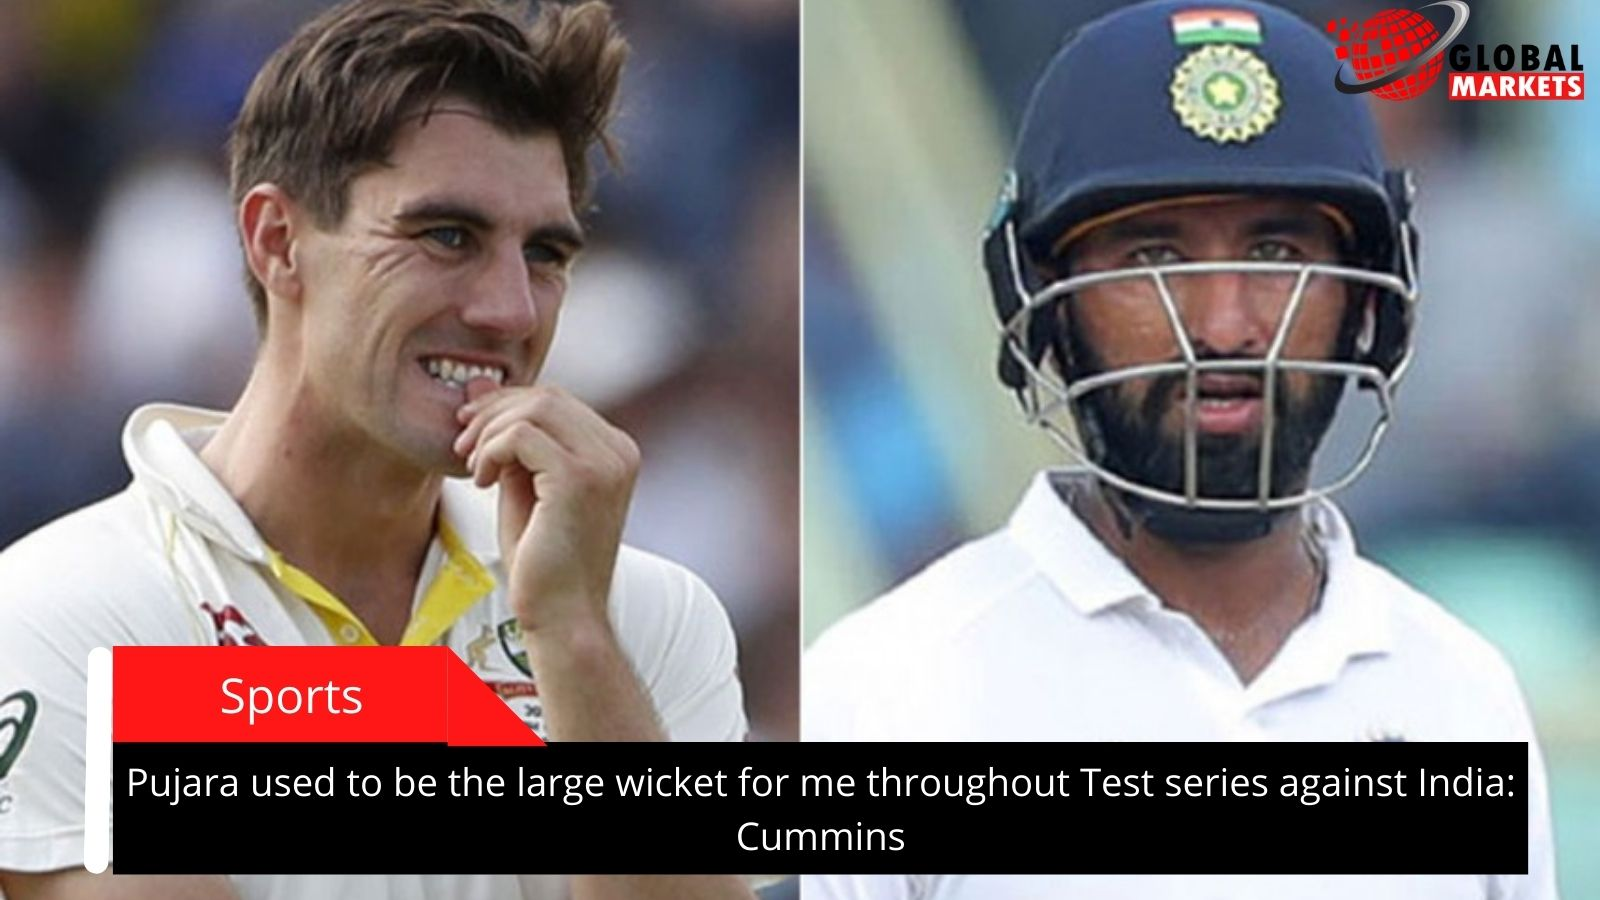 Pujara used to be the large wicket for me throughout Test series against India: Cummins